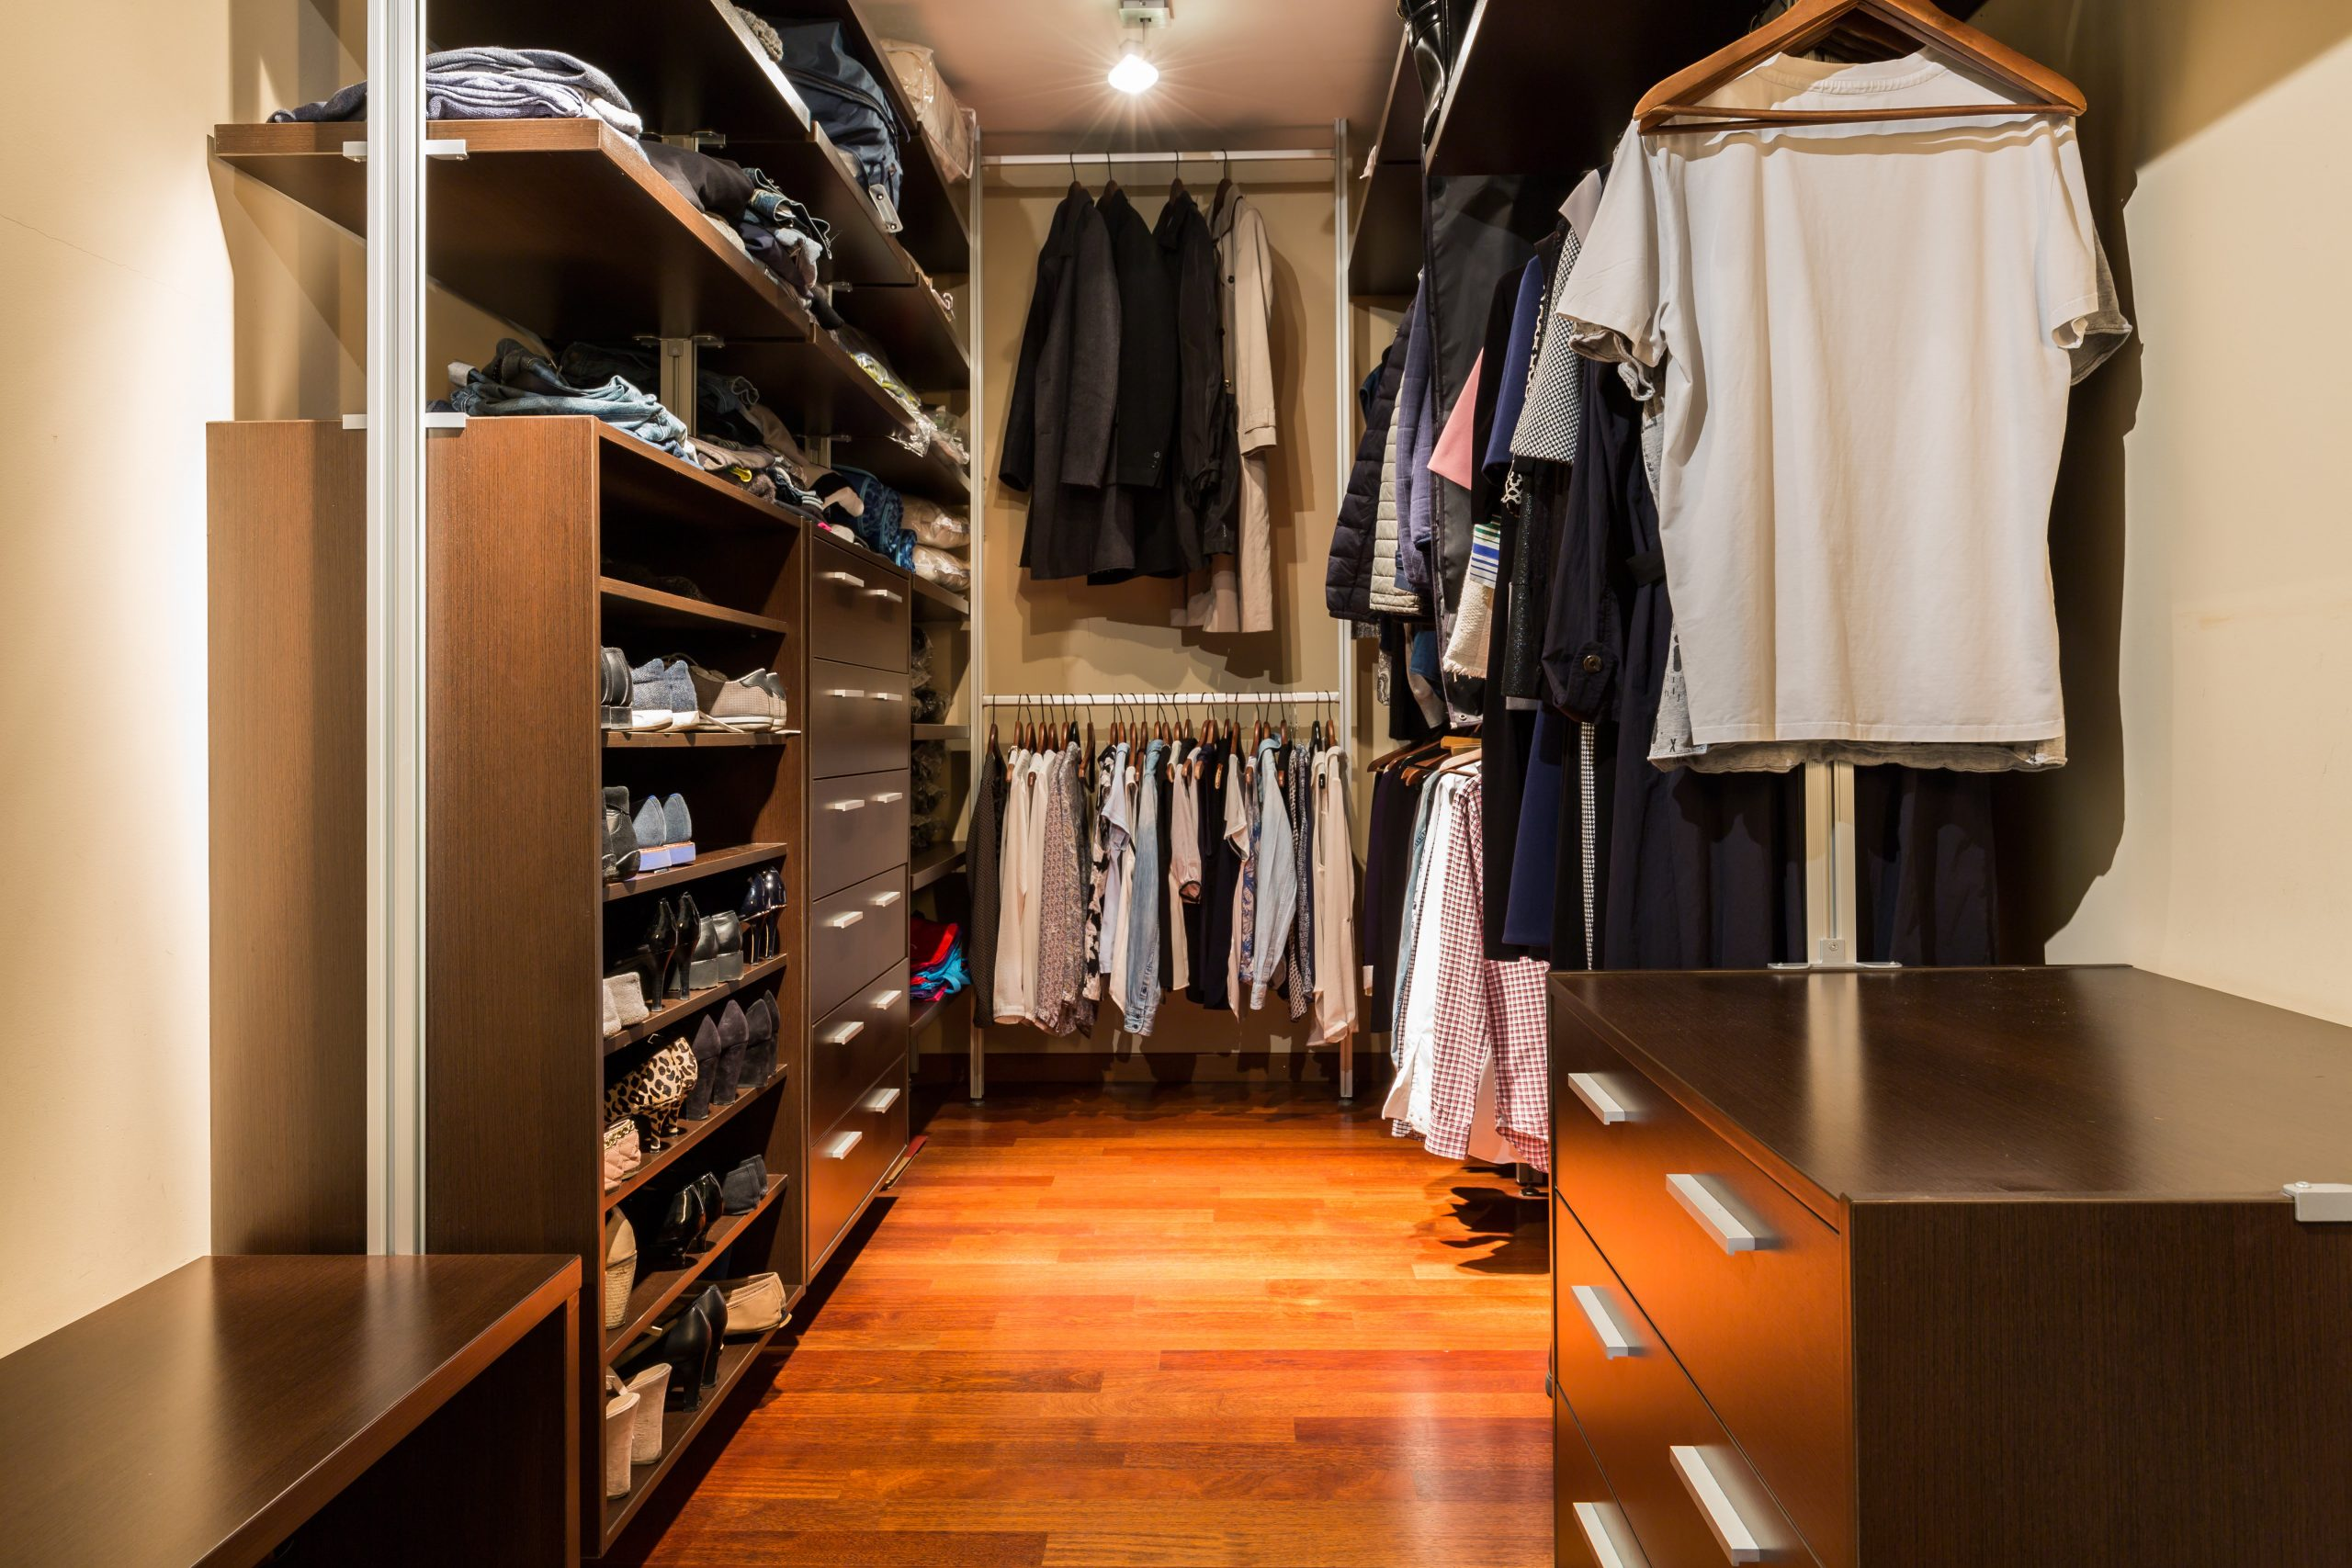 Walk-in closet full of clothing after a renovation bialasiewicz © 123rf